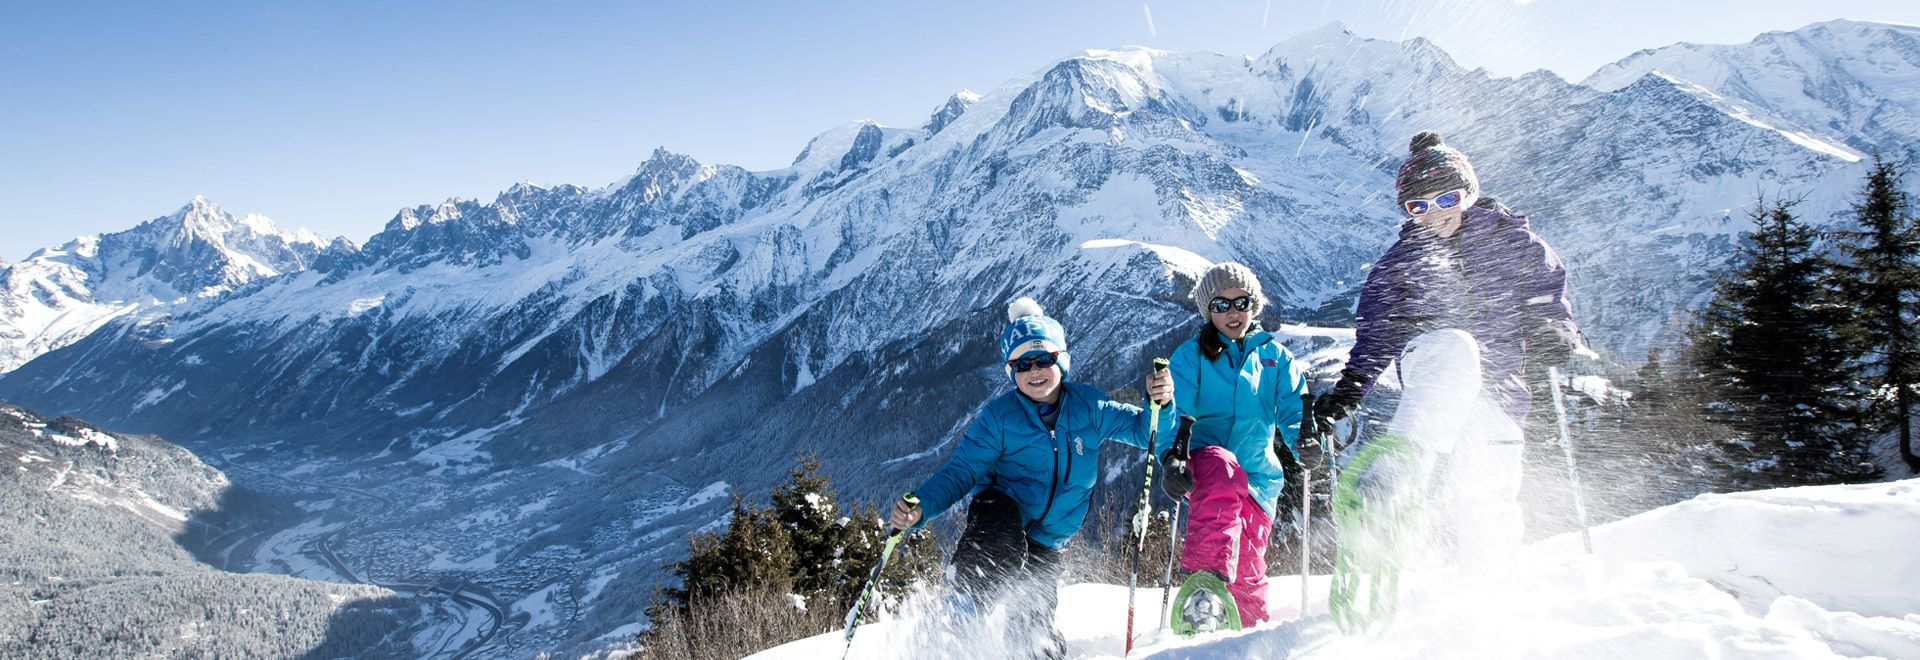 Ski rental Les Houches Intersport